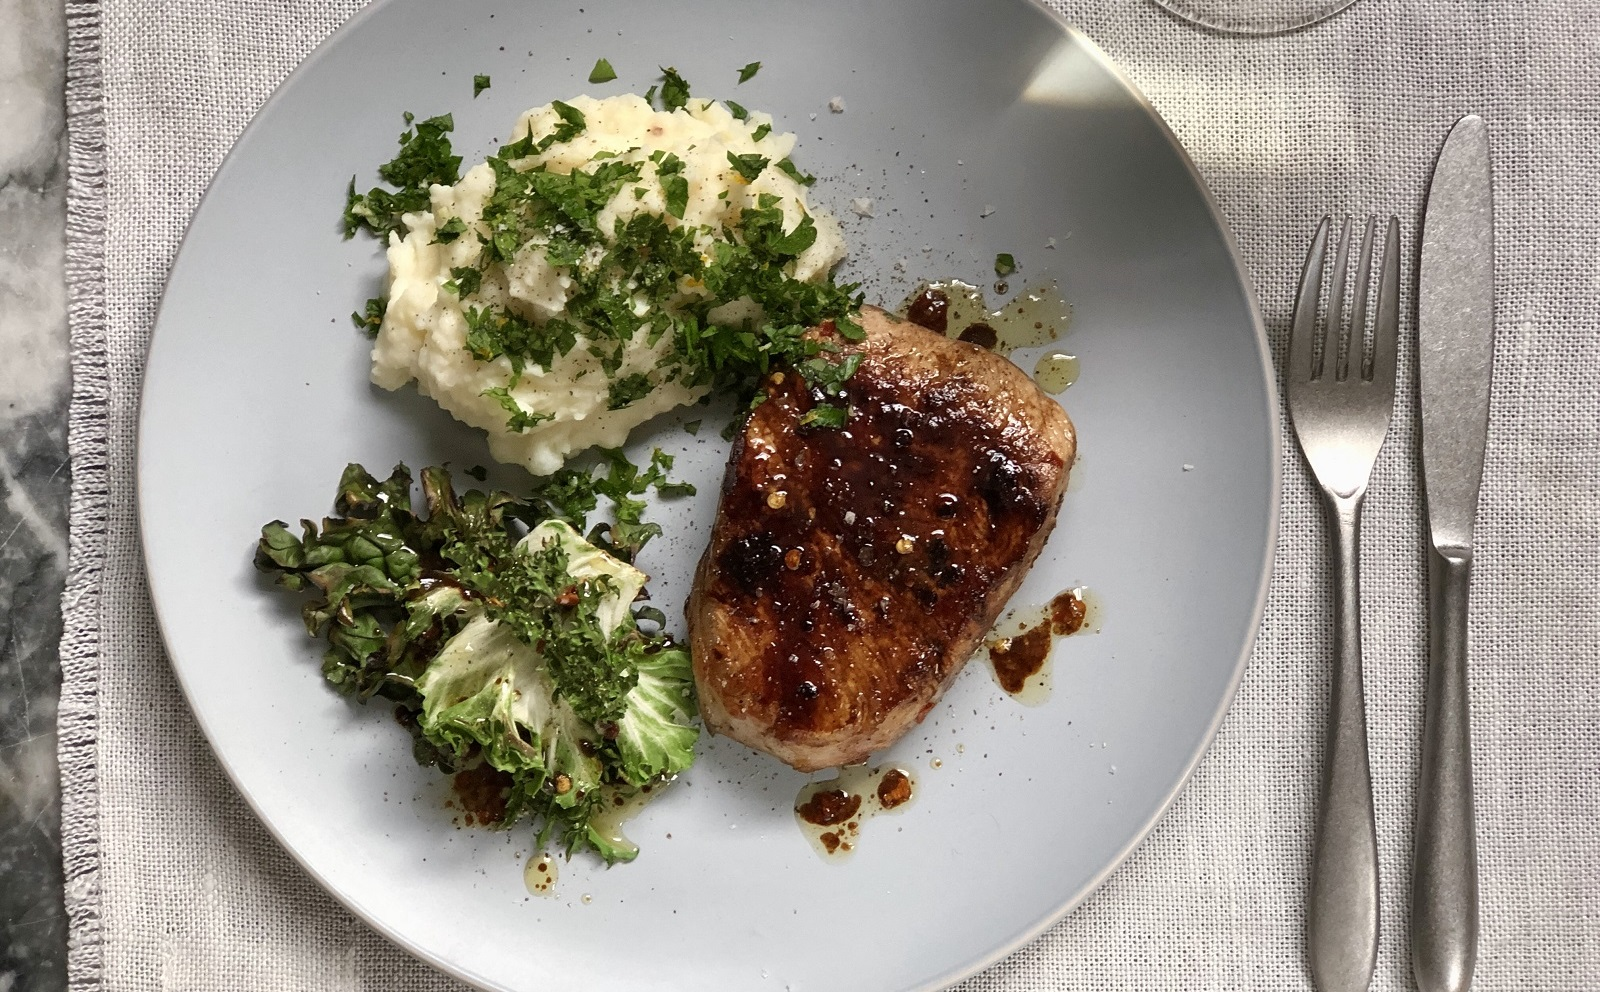 Grilled pork loin steaks with greens and balsamic glaze